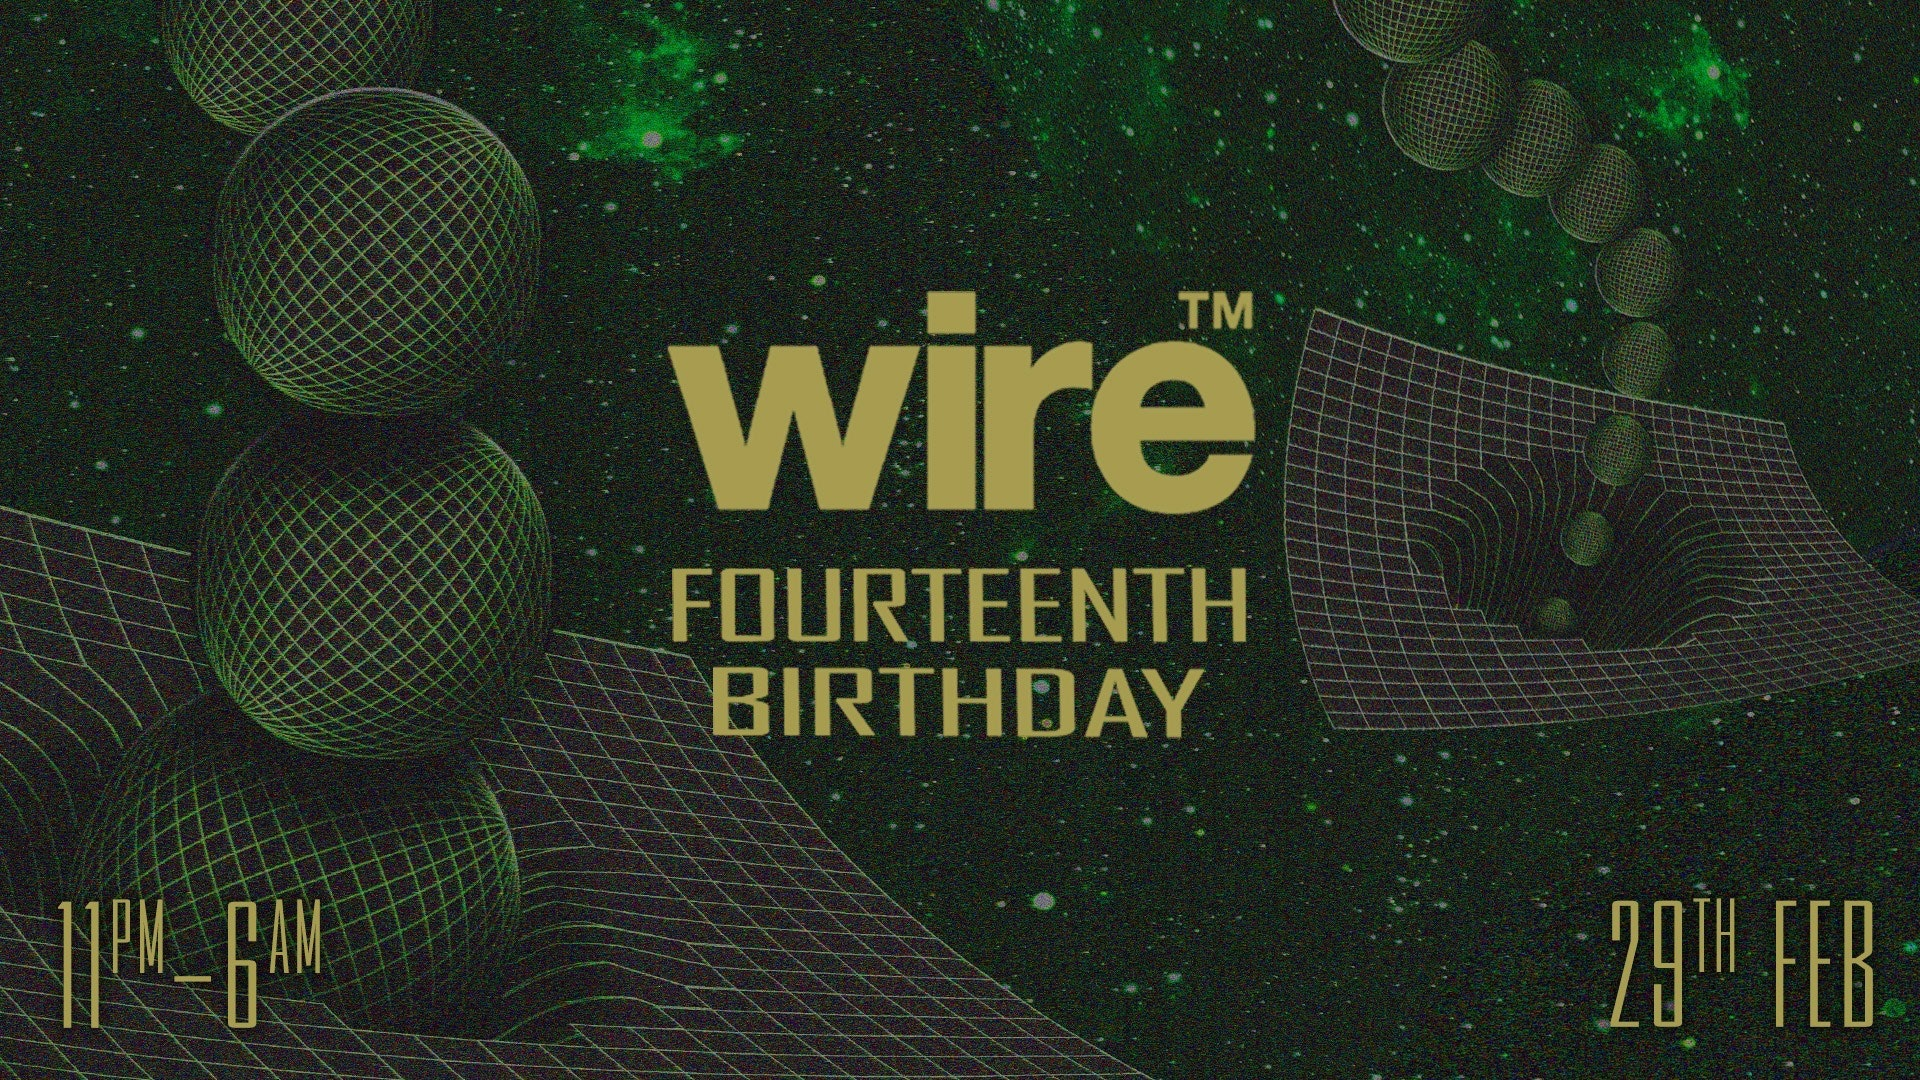 Wire's 14th Birthday: Part 2